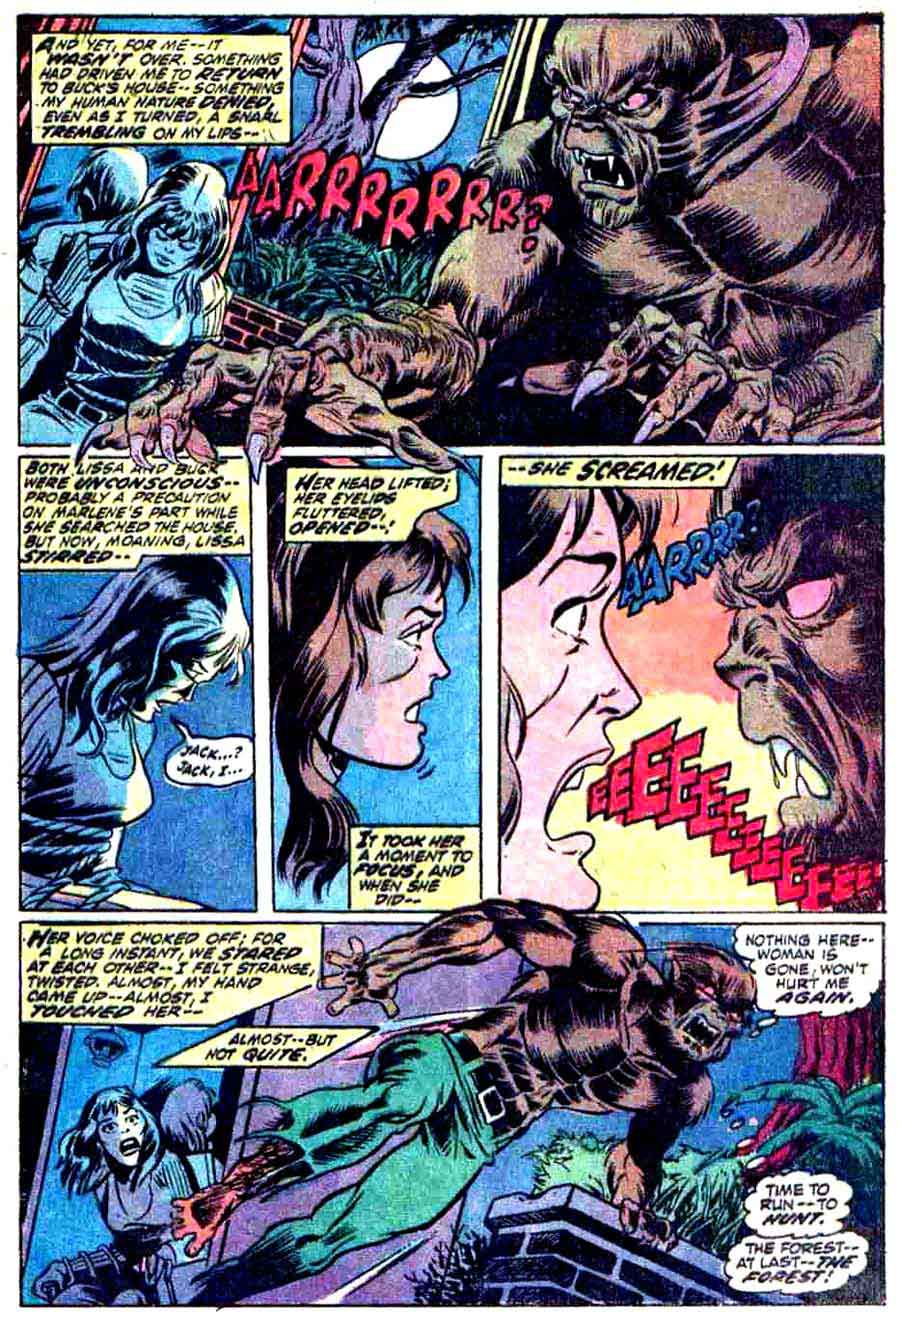 Werewolf by Night v1 #1 1970s marvel comic book page art by Mike Ploog